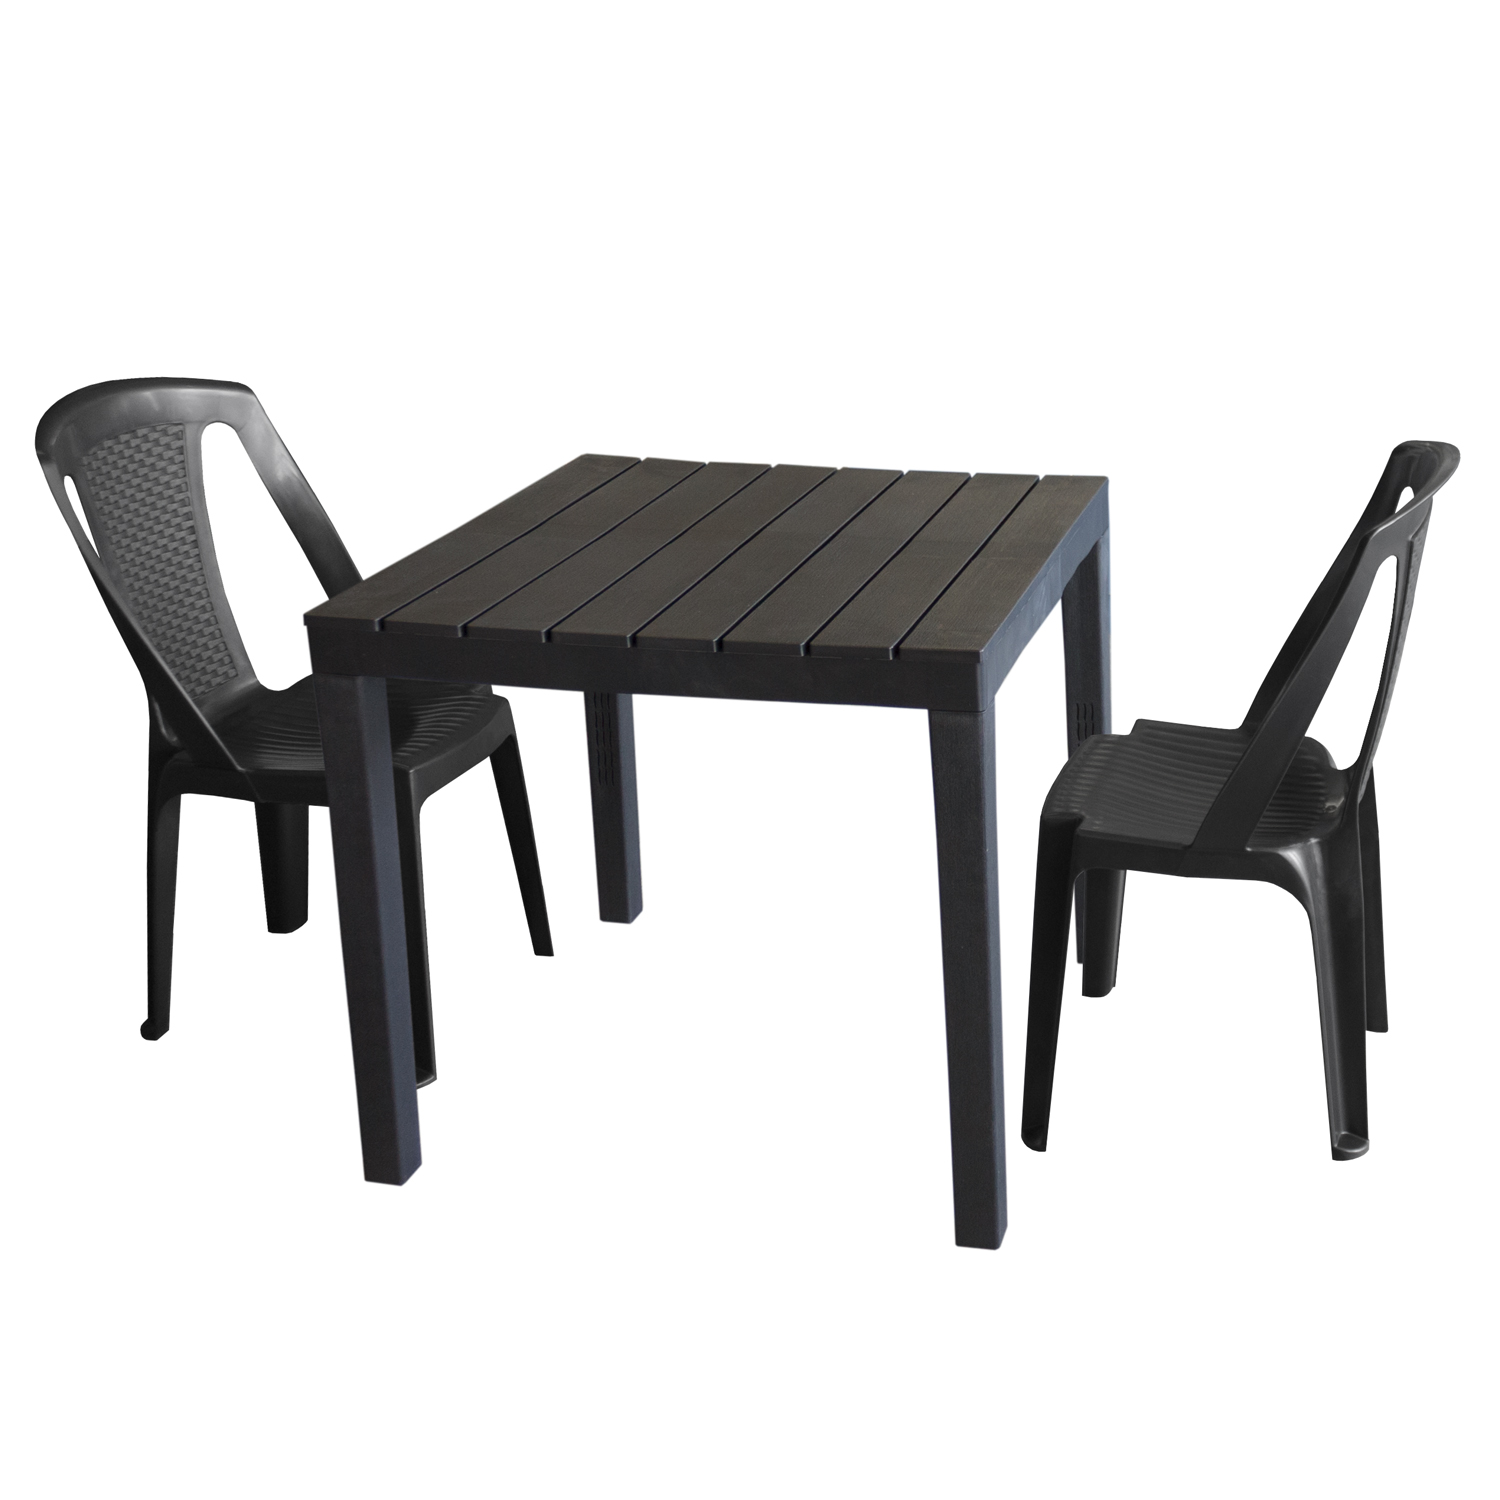 gartenm bel set kunststoff gartentisch 78x78cm 2x stapelstuhl procida anthrazit garten bistro. Black Bedroom Furniture Sets. Home Design Ideas